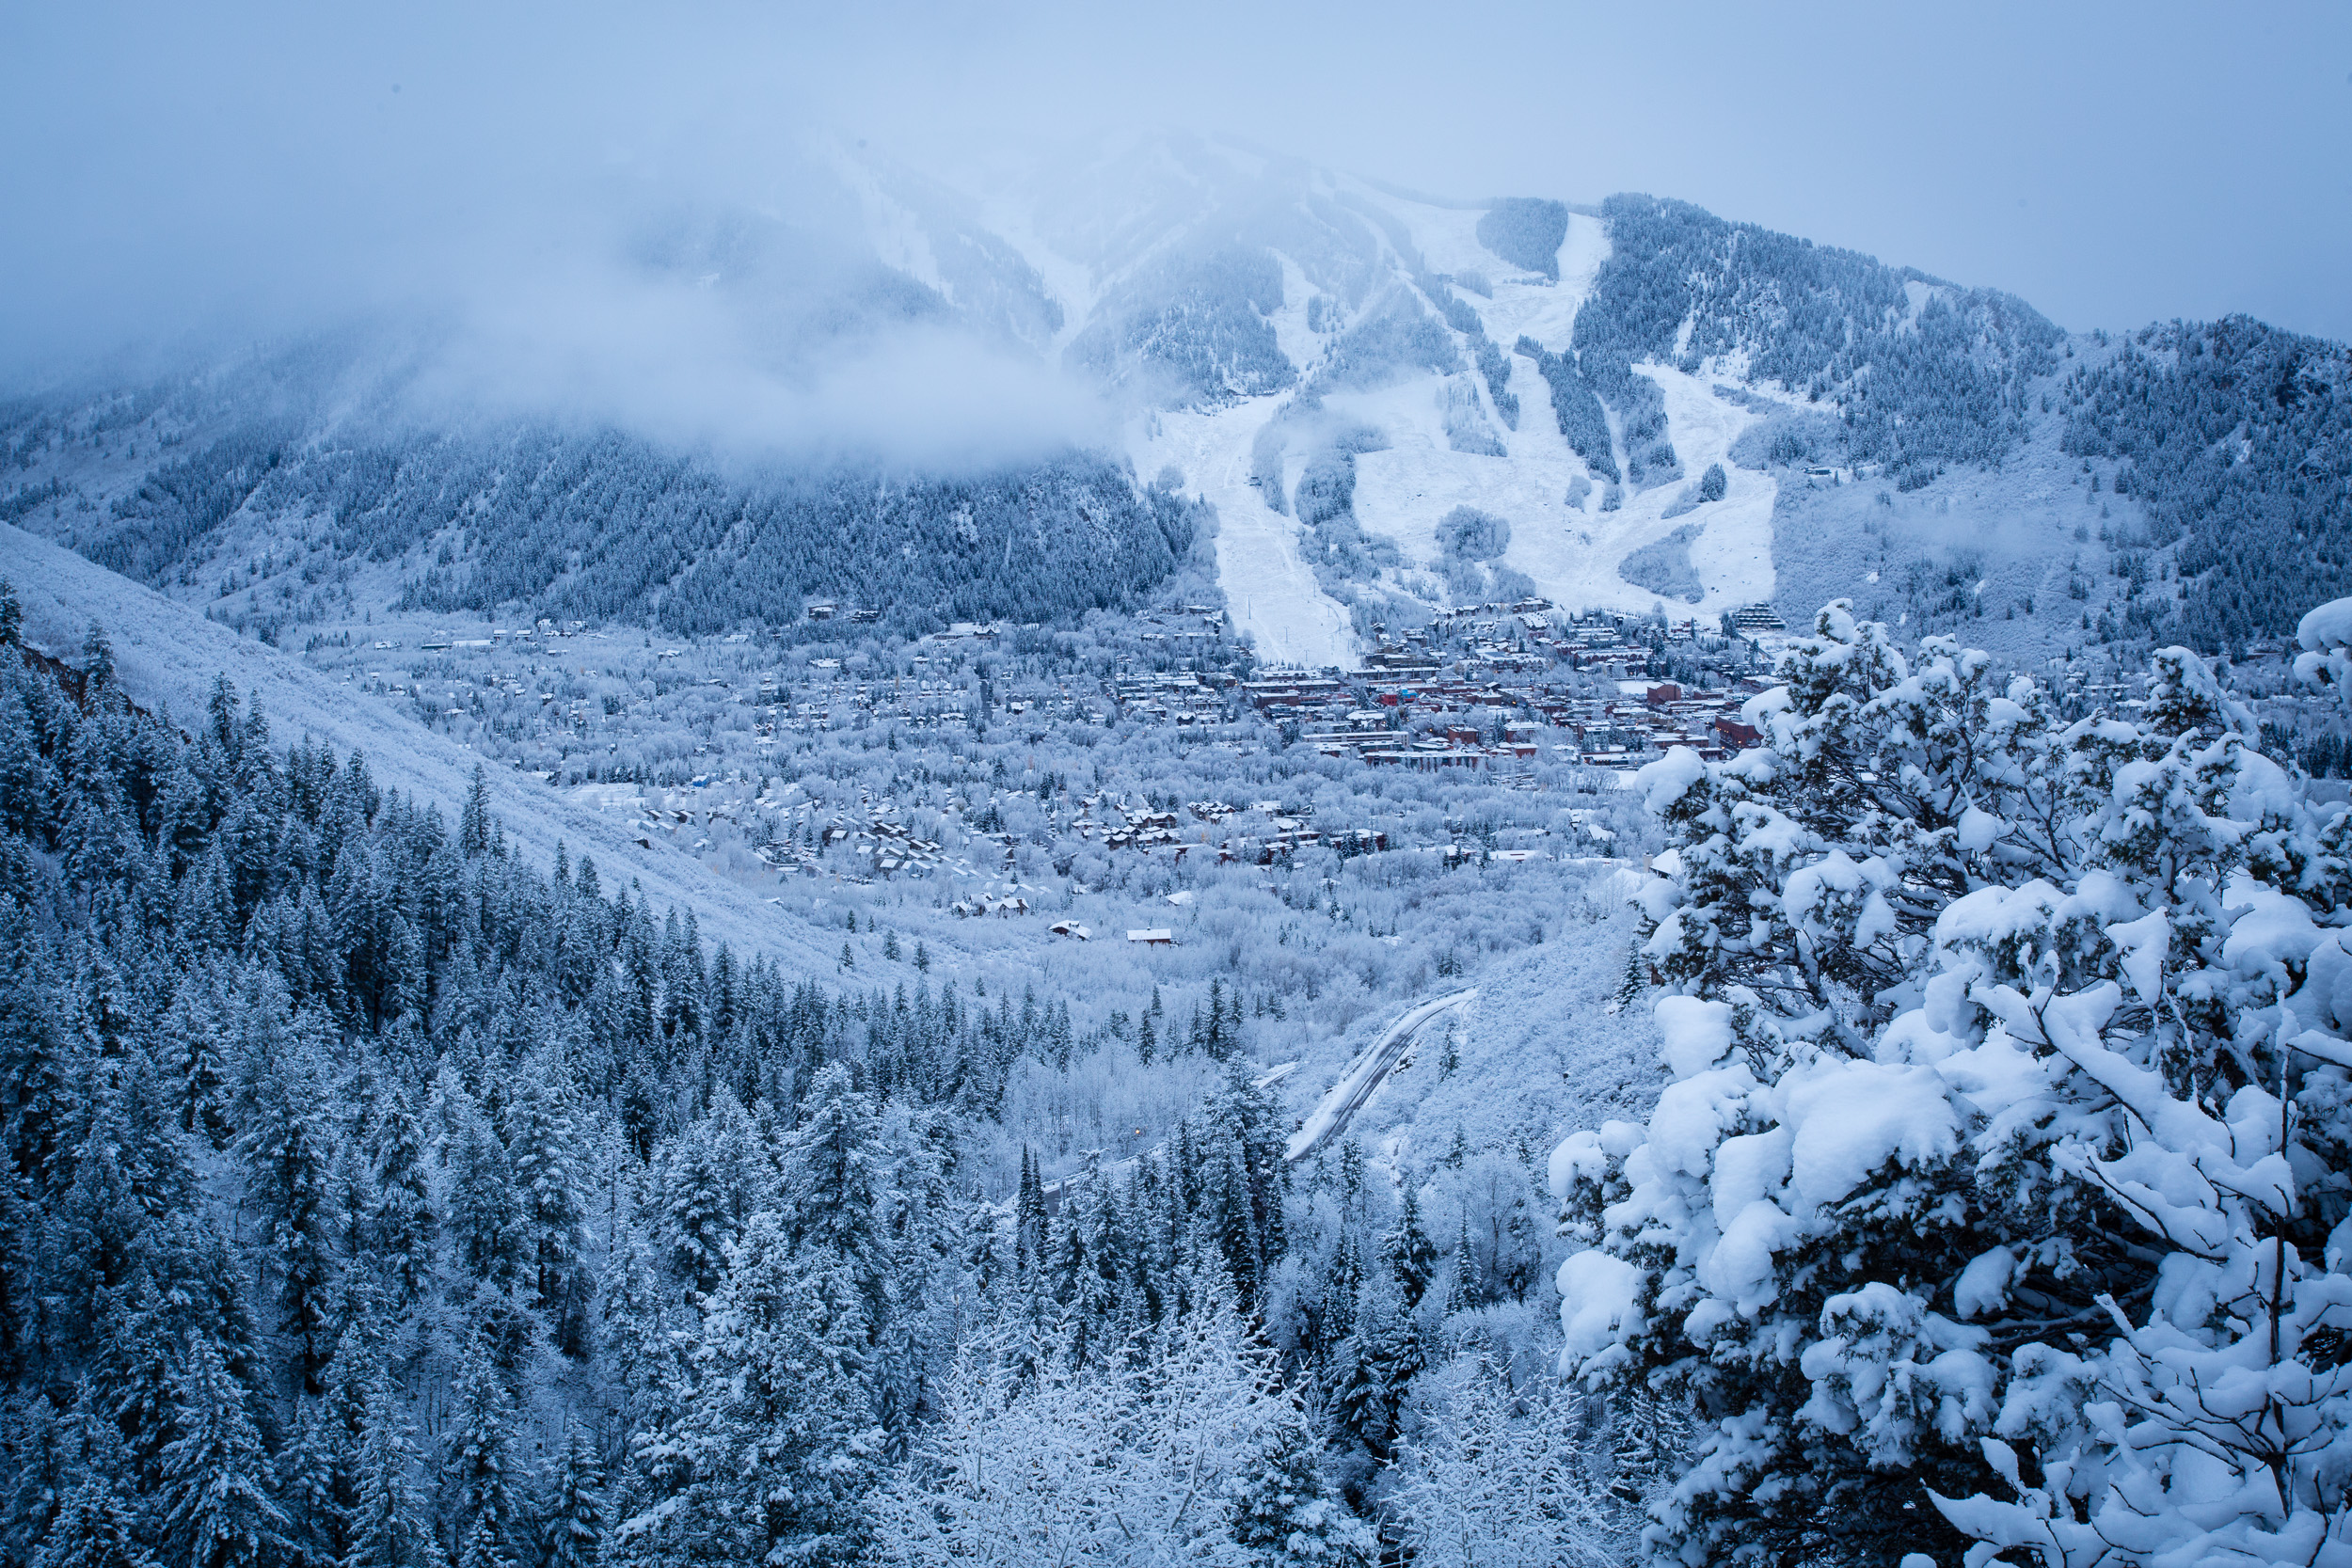 Live Snow Falling Wallpaper For Desktop Snowmaking Operations Combined With Five To Nine Inches Of